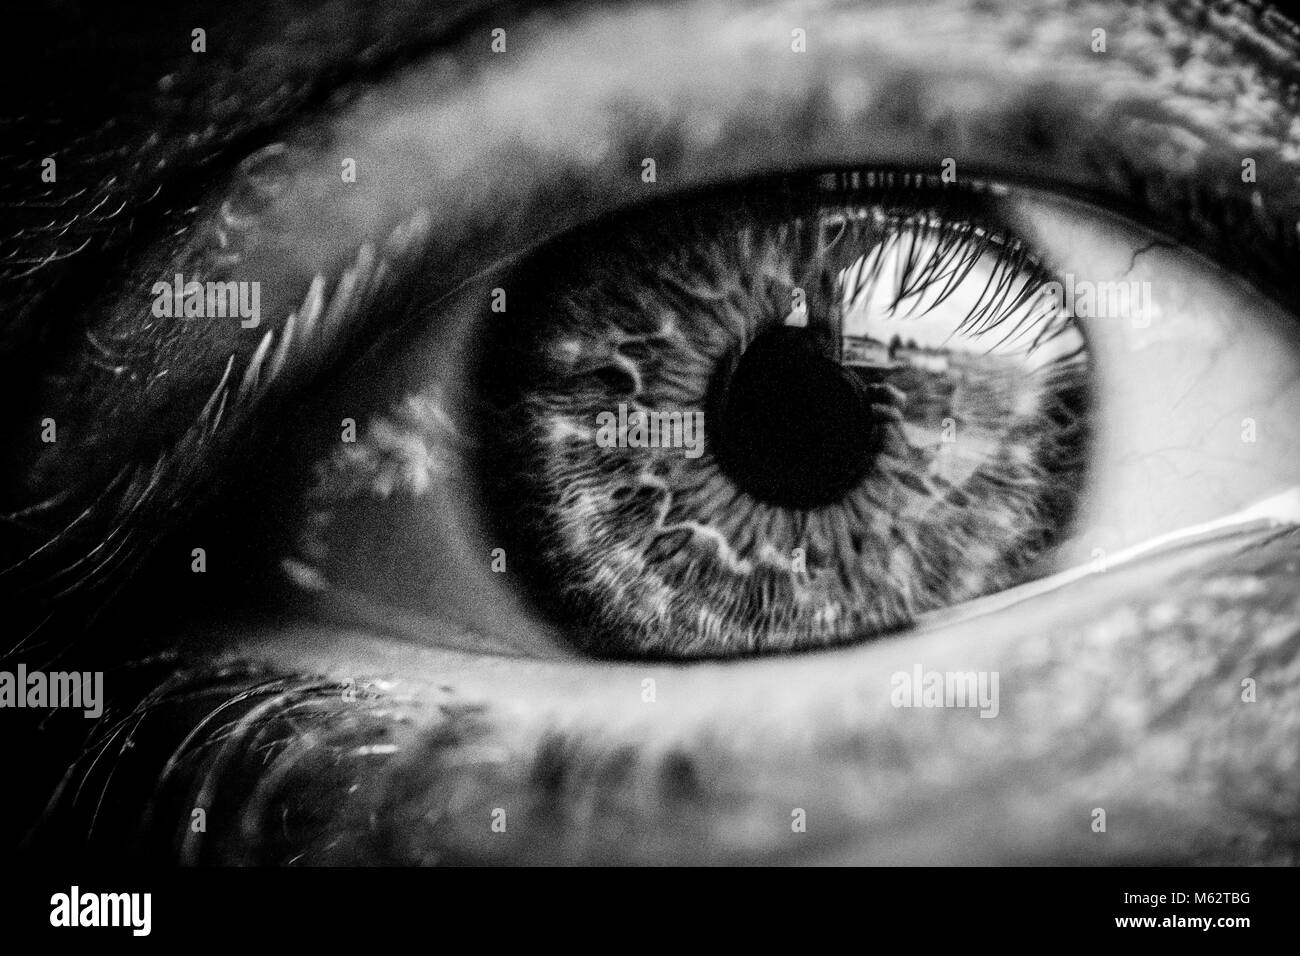 Black and white macro close up of human eye looking at camera stock image